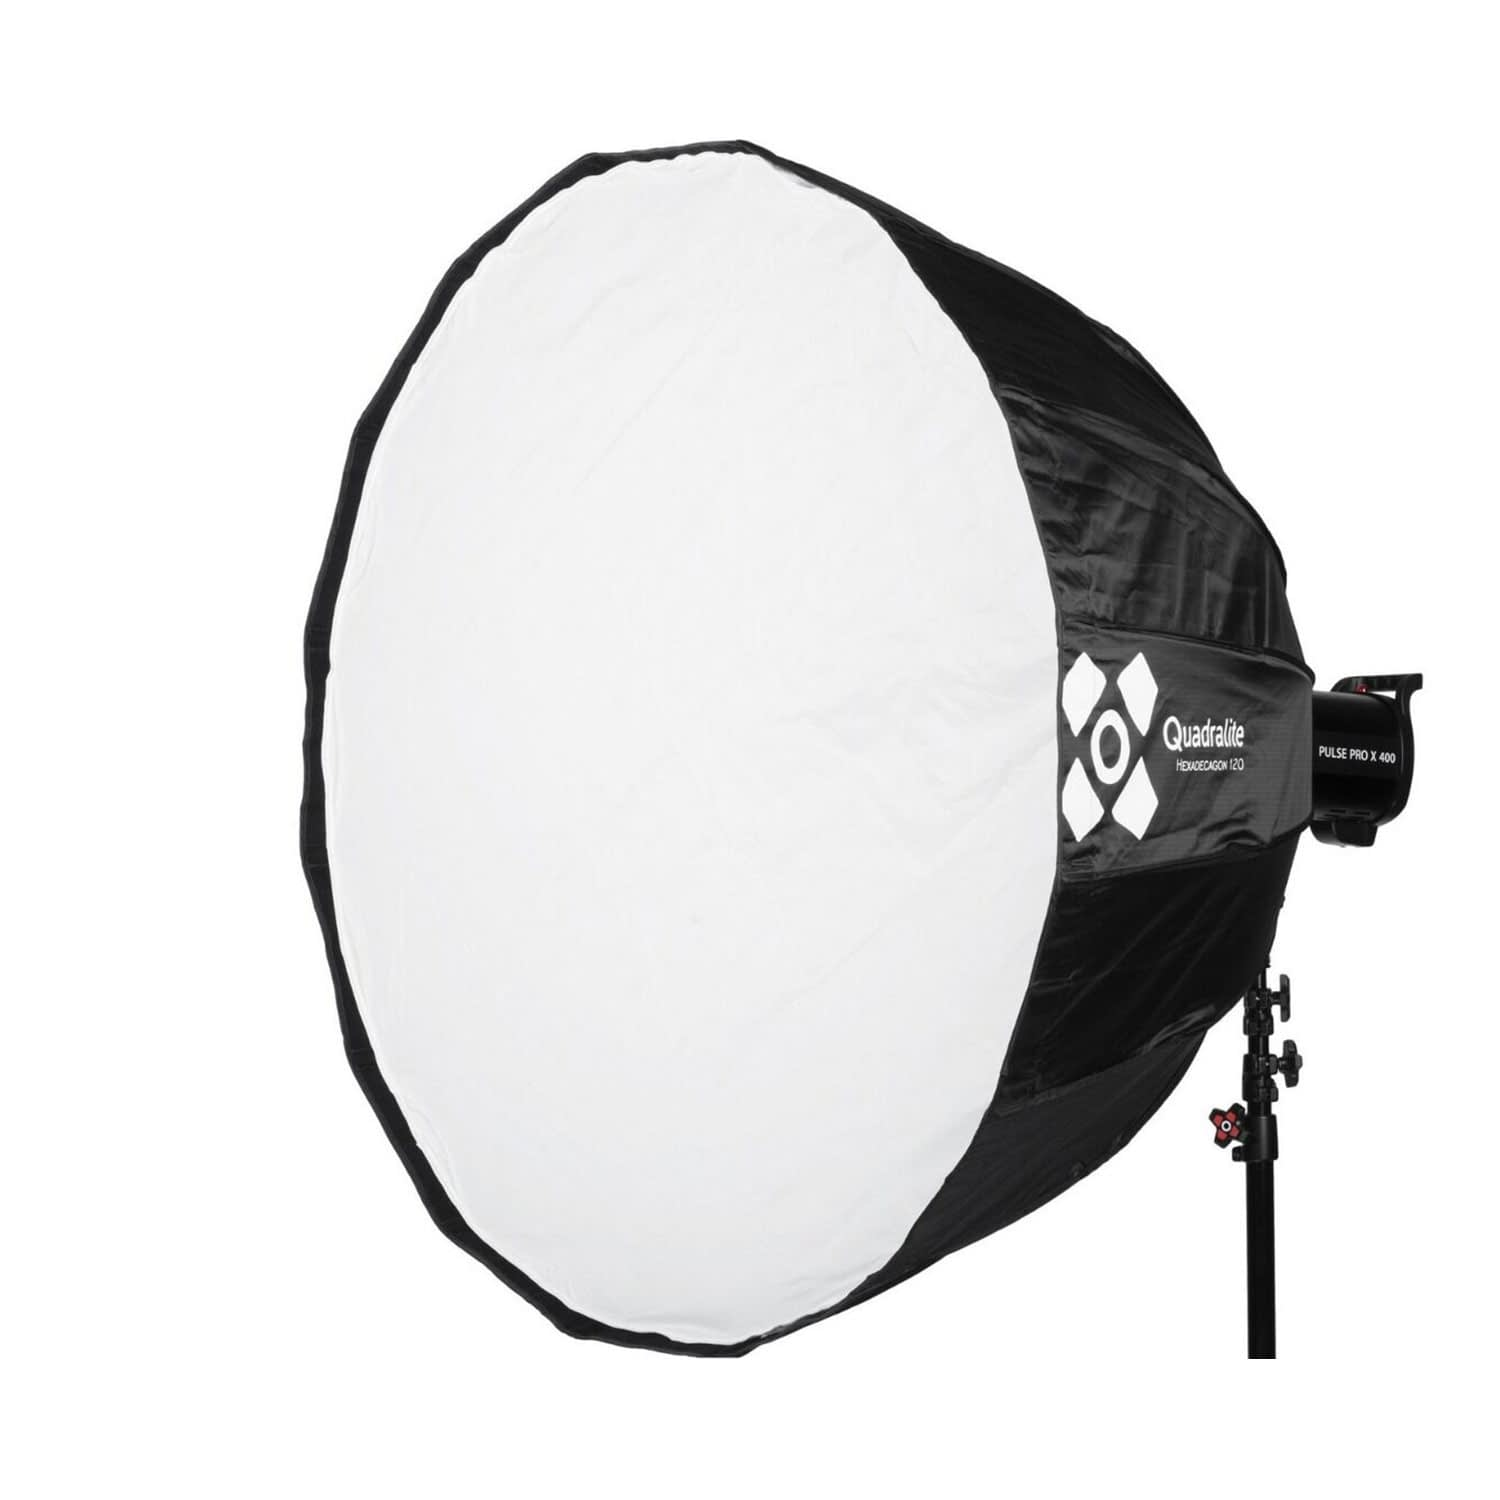 120cm Quadralite Hexadecagon Softbox